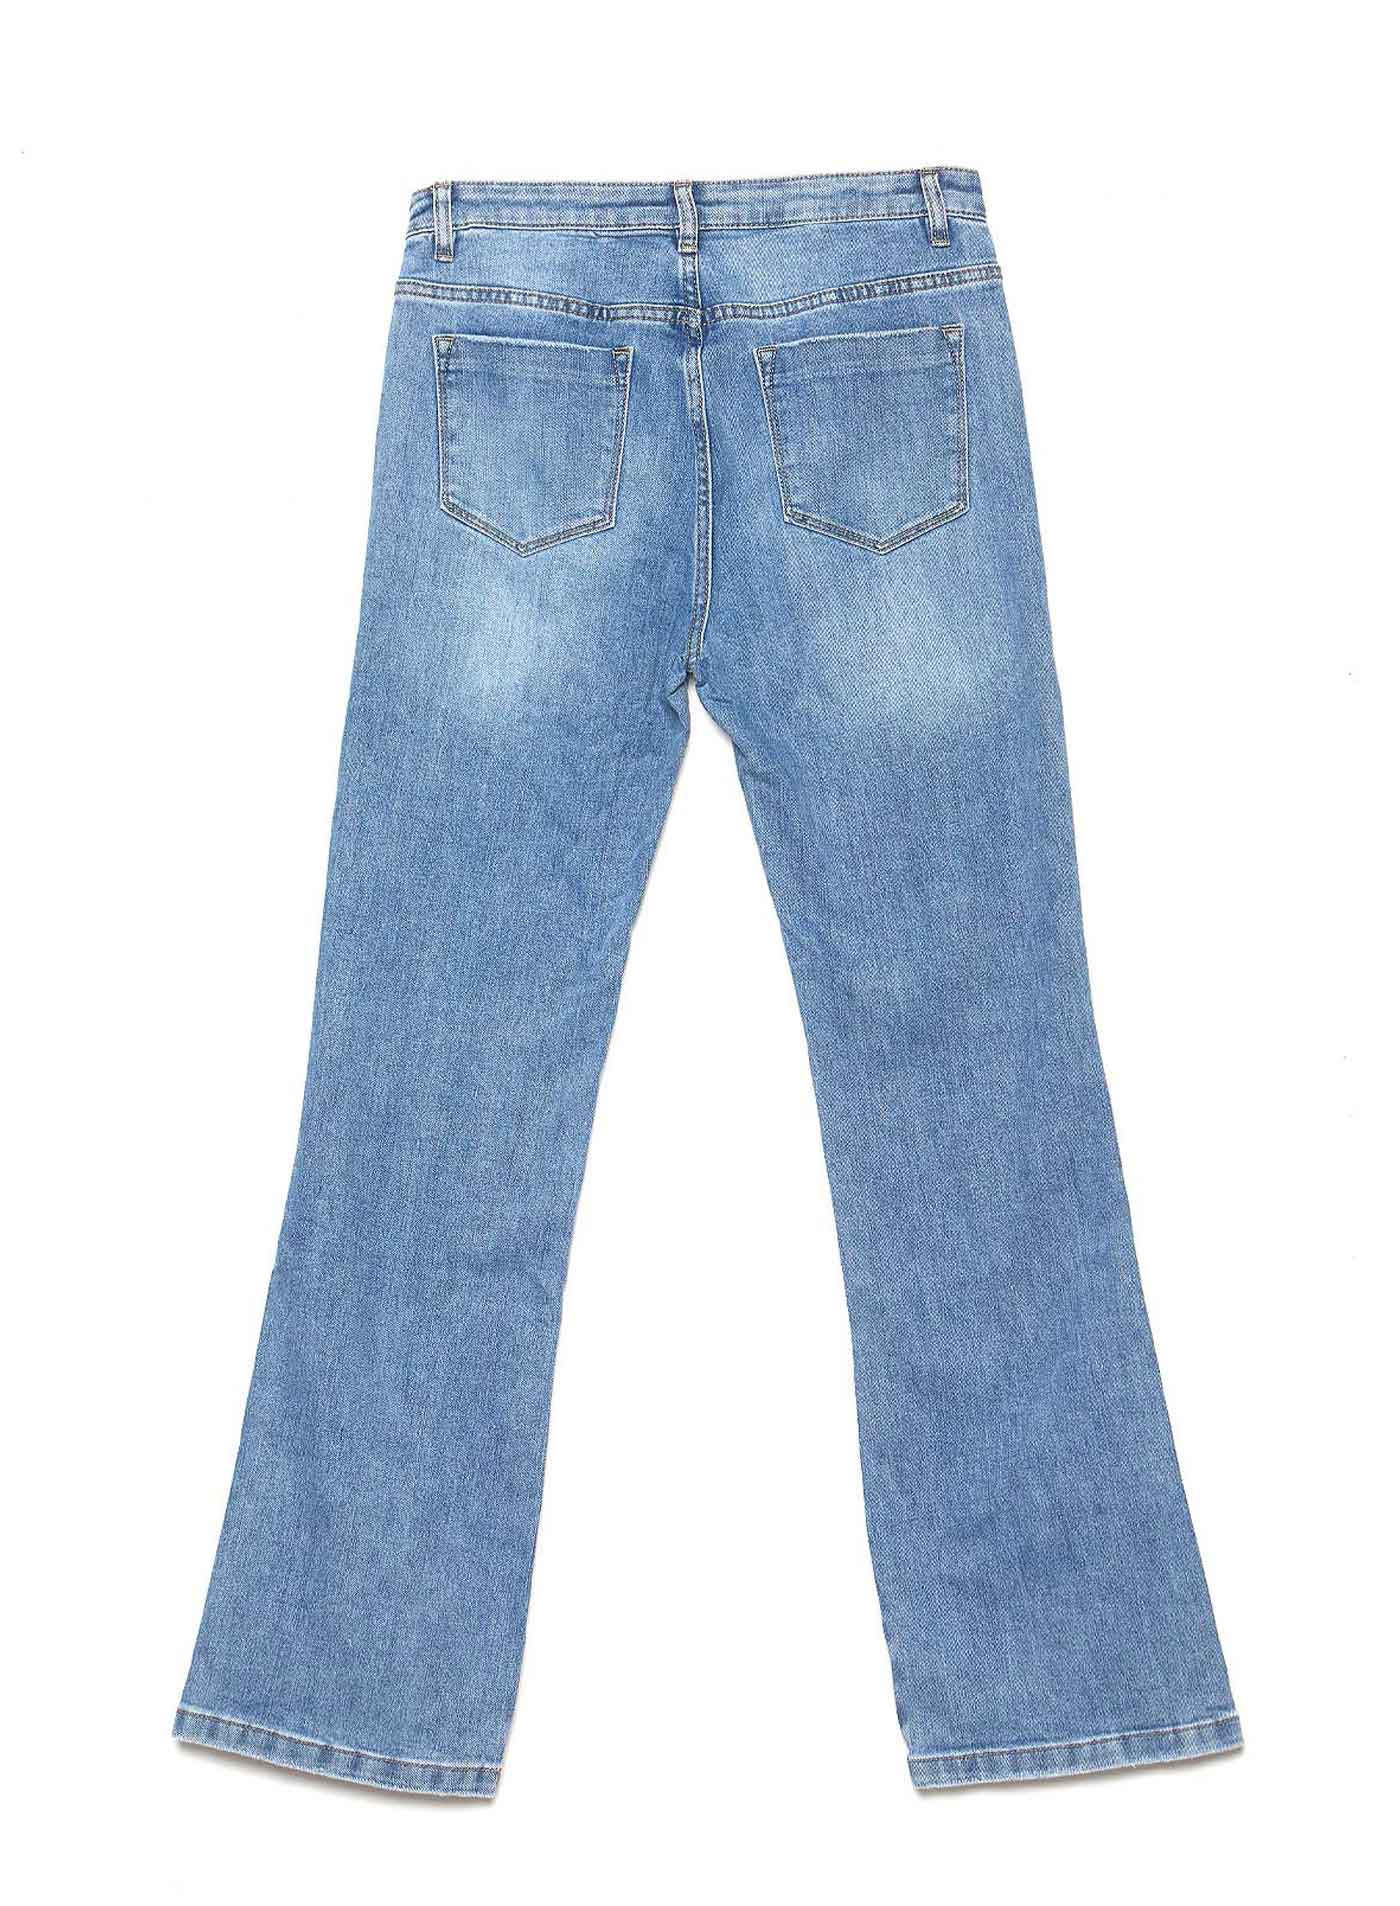 Your Decade KANDY DREAMZ JEANS 4